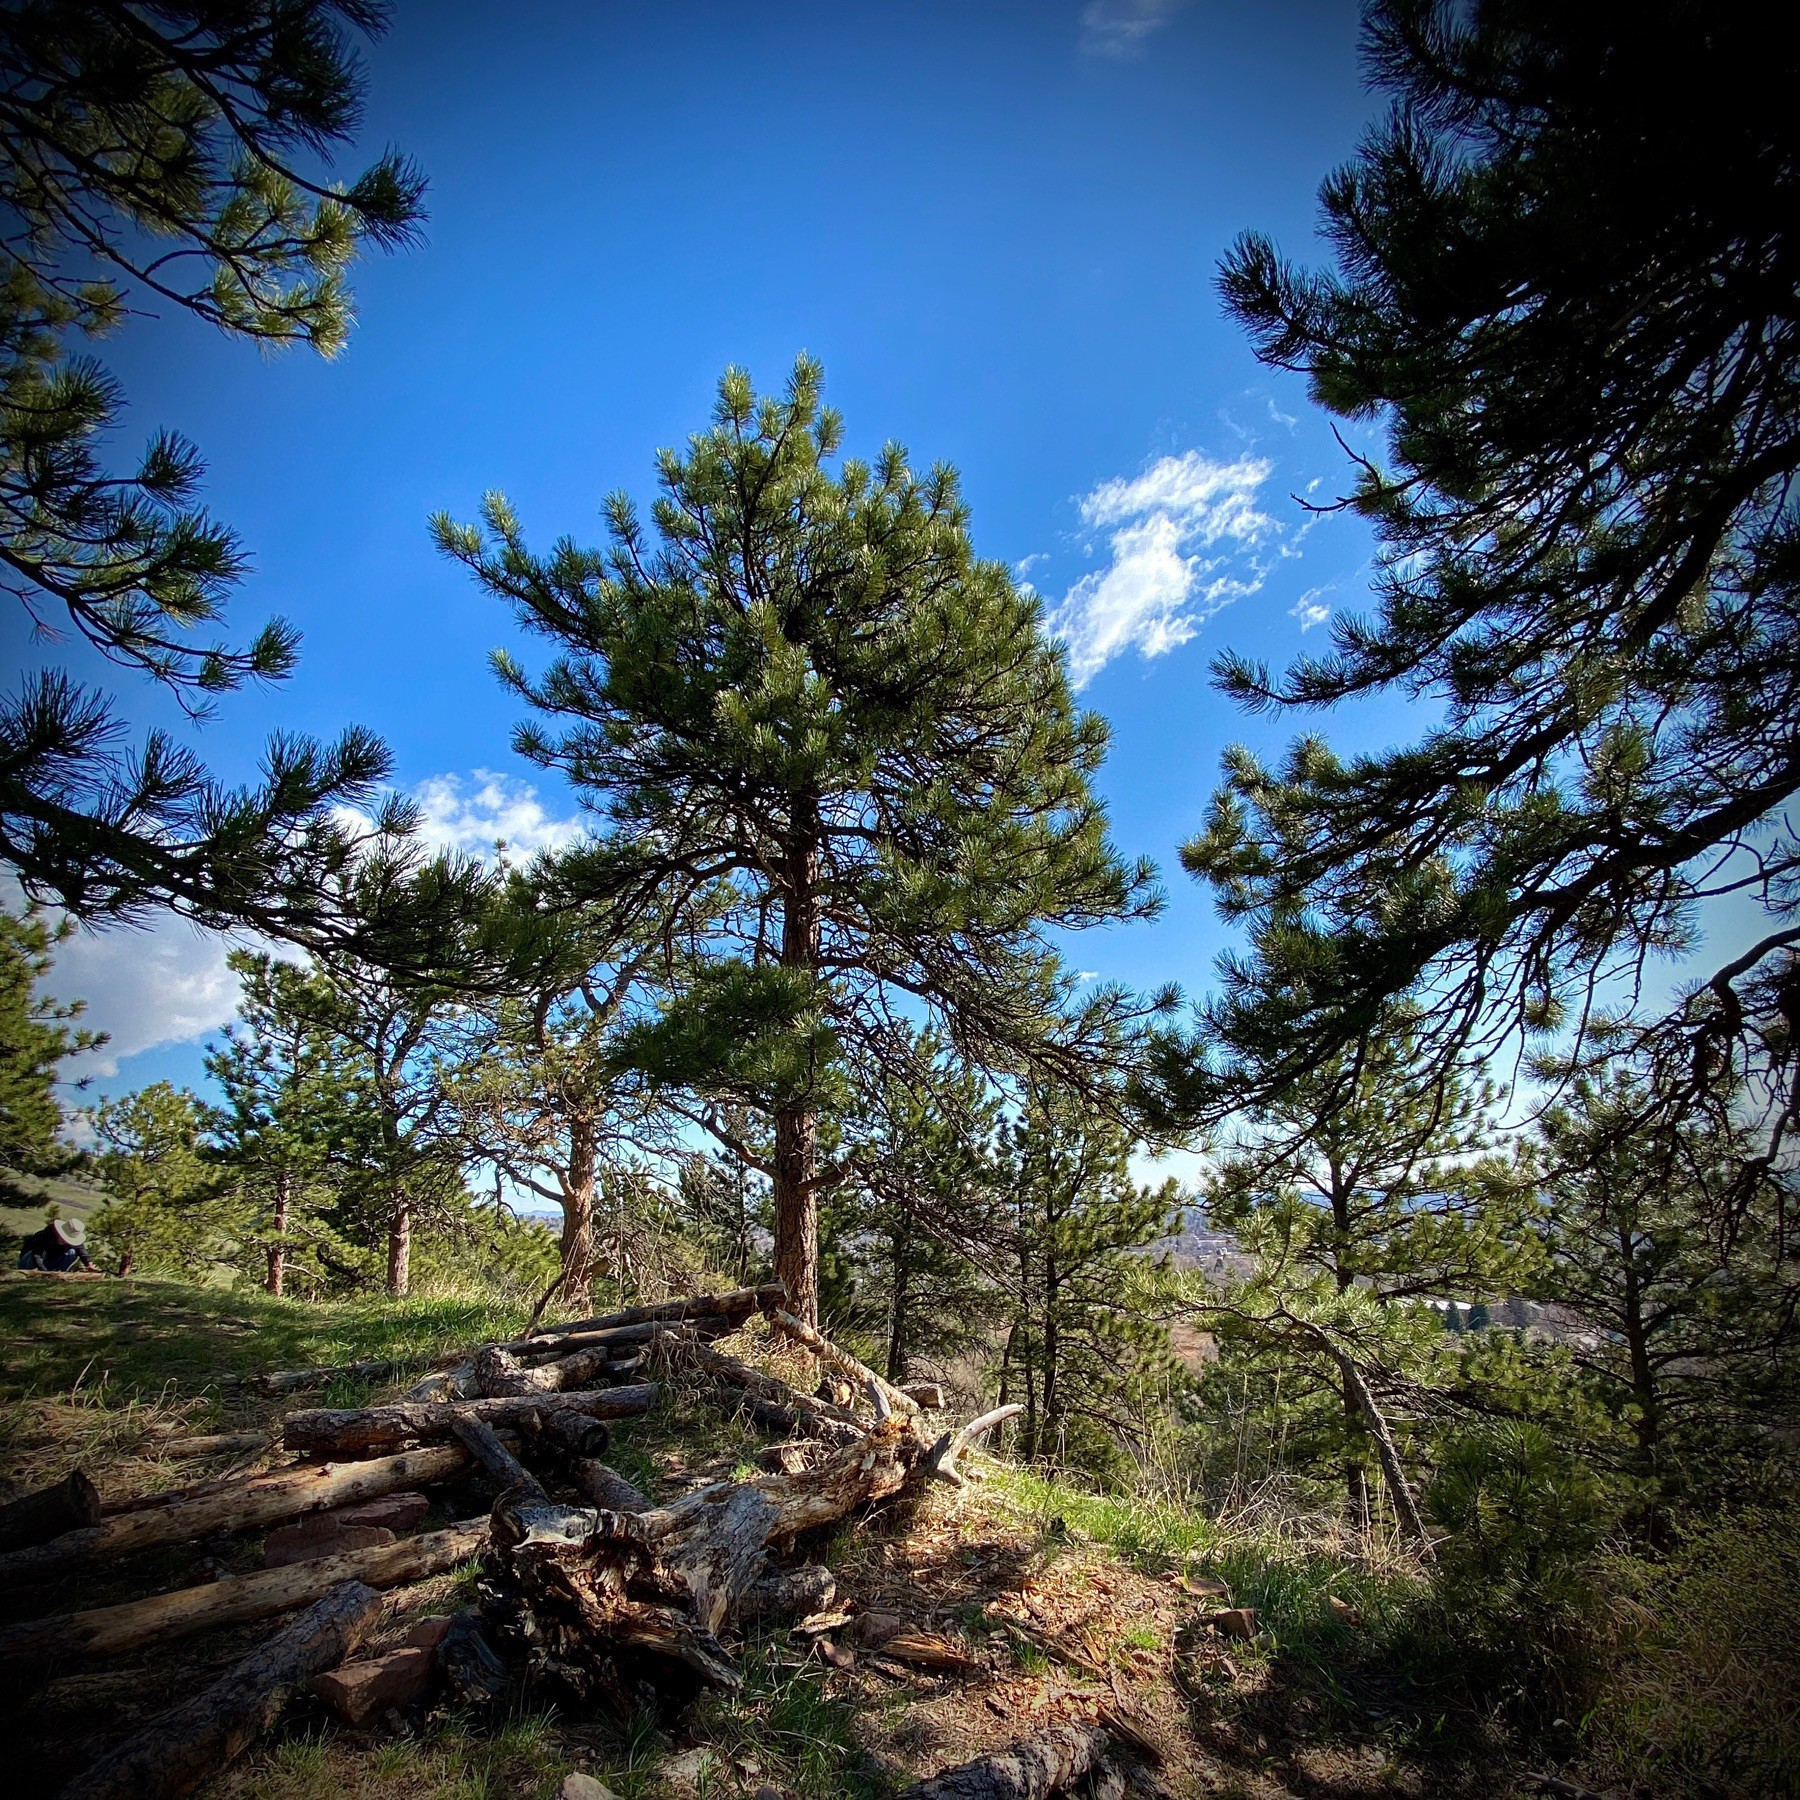 Pine trees and blue sky atop a mountain.